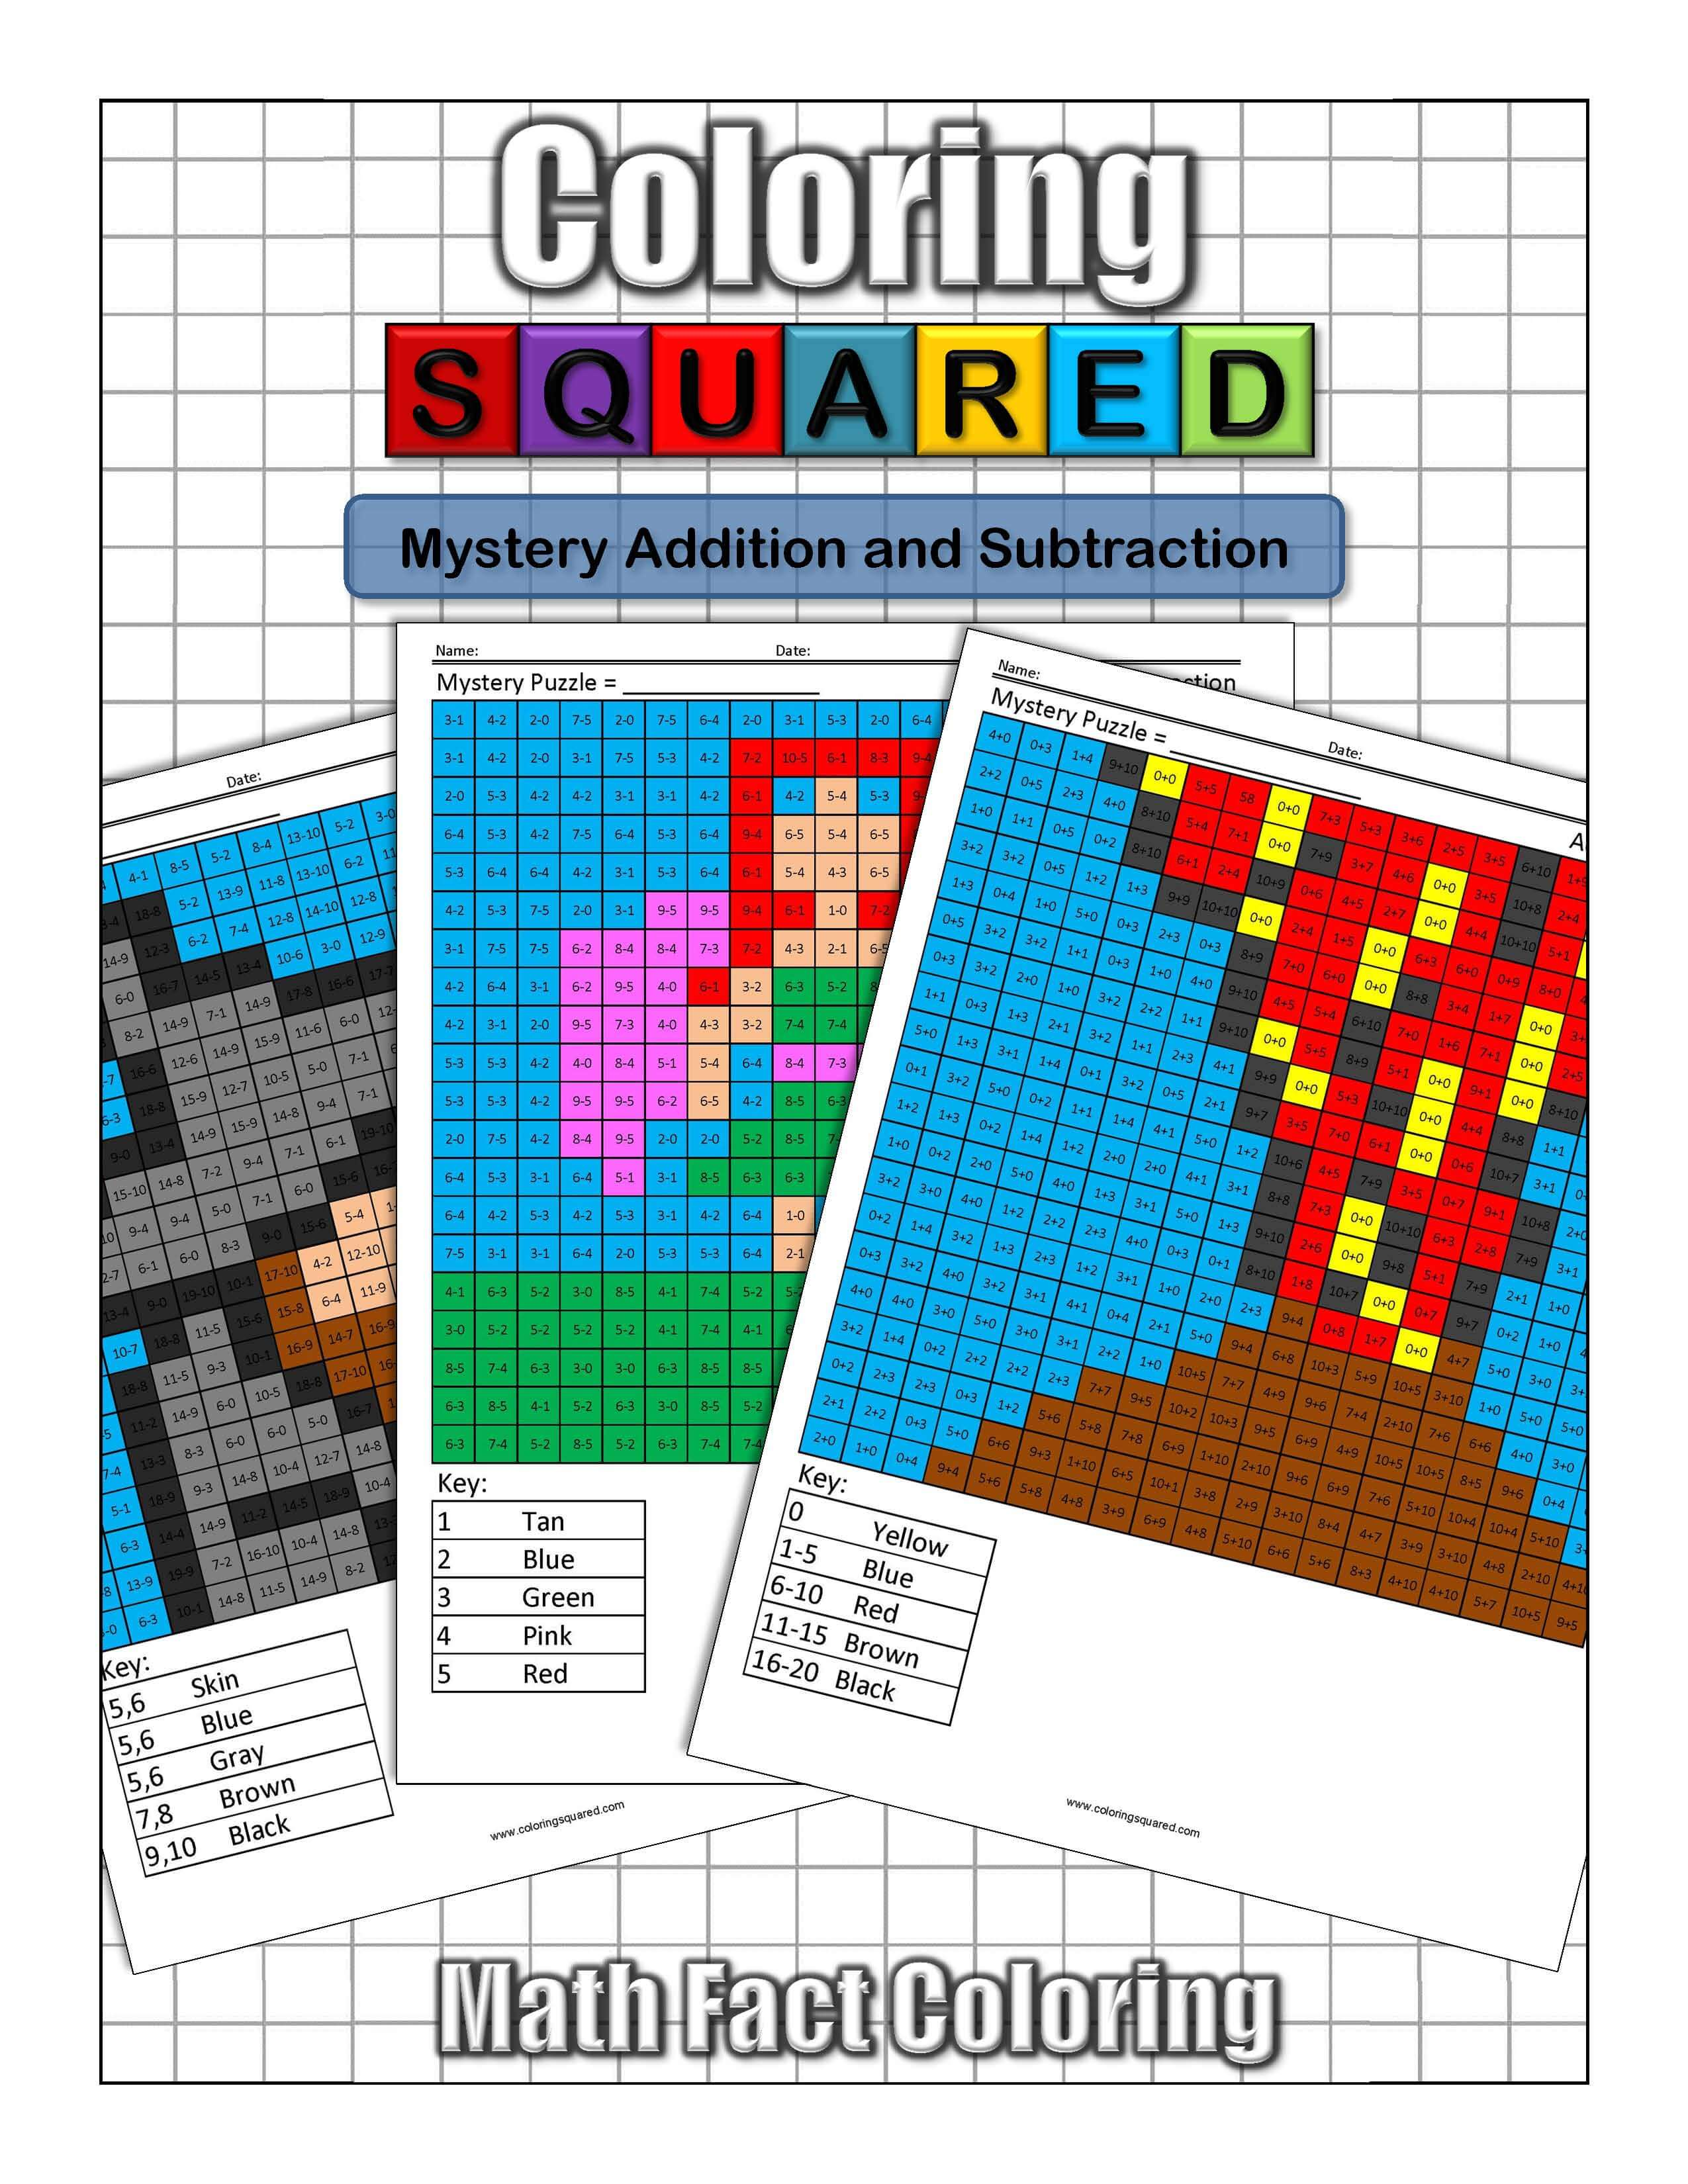 Mystery Addition and Subtraction - Coloring Squared